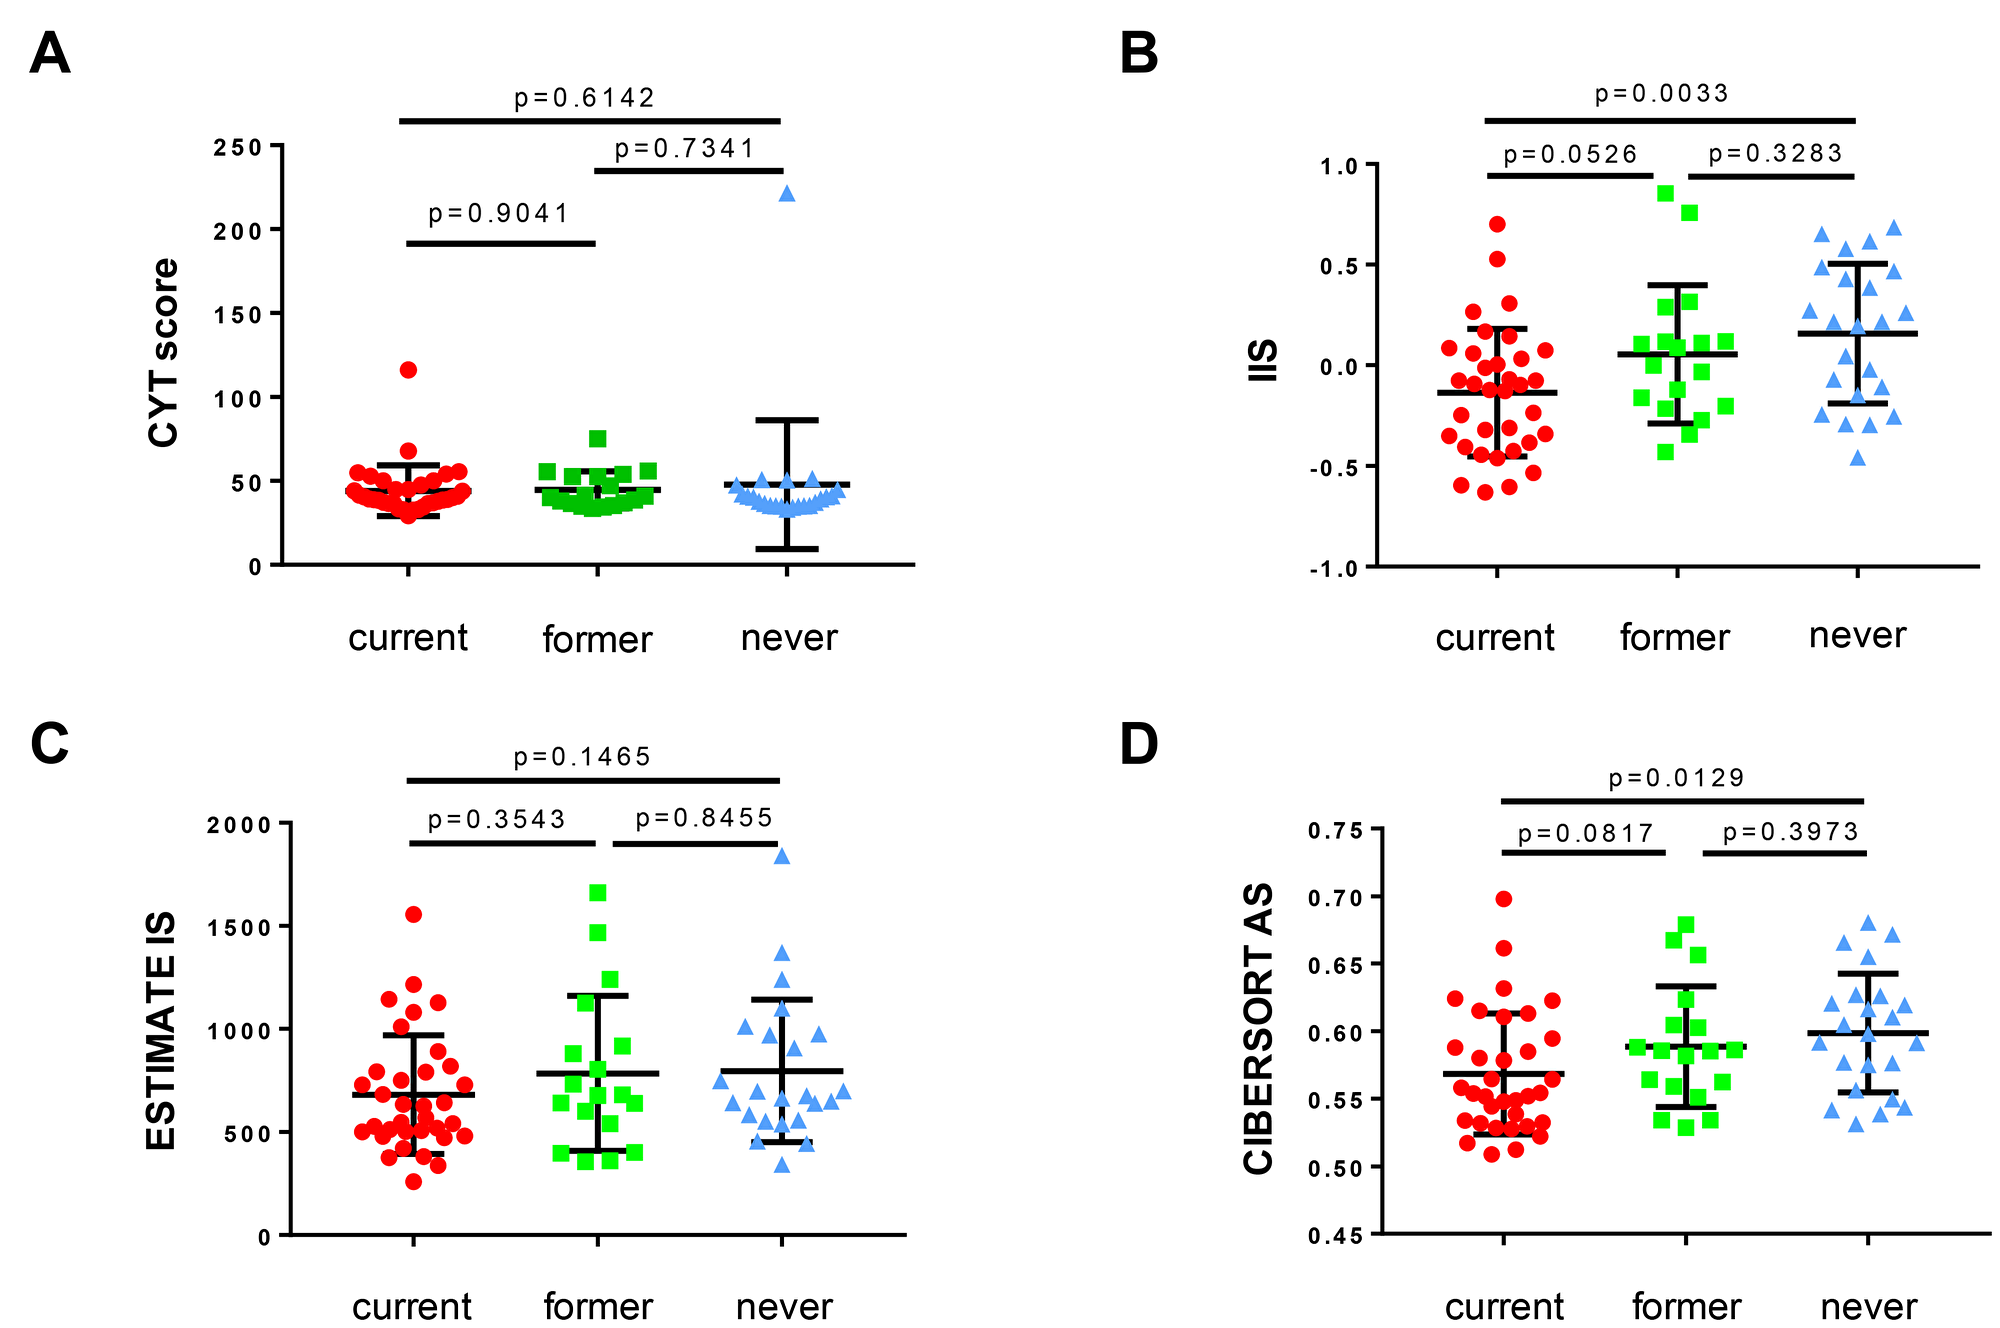 The association of smoking history with immune infiltration and T cell activation in non-cancerous bronchial epithelium demonstrates stepwise immunosuppression with increasing smoking history.